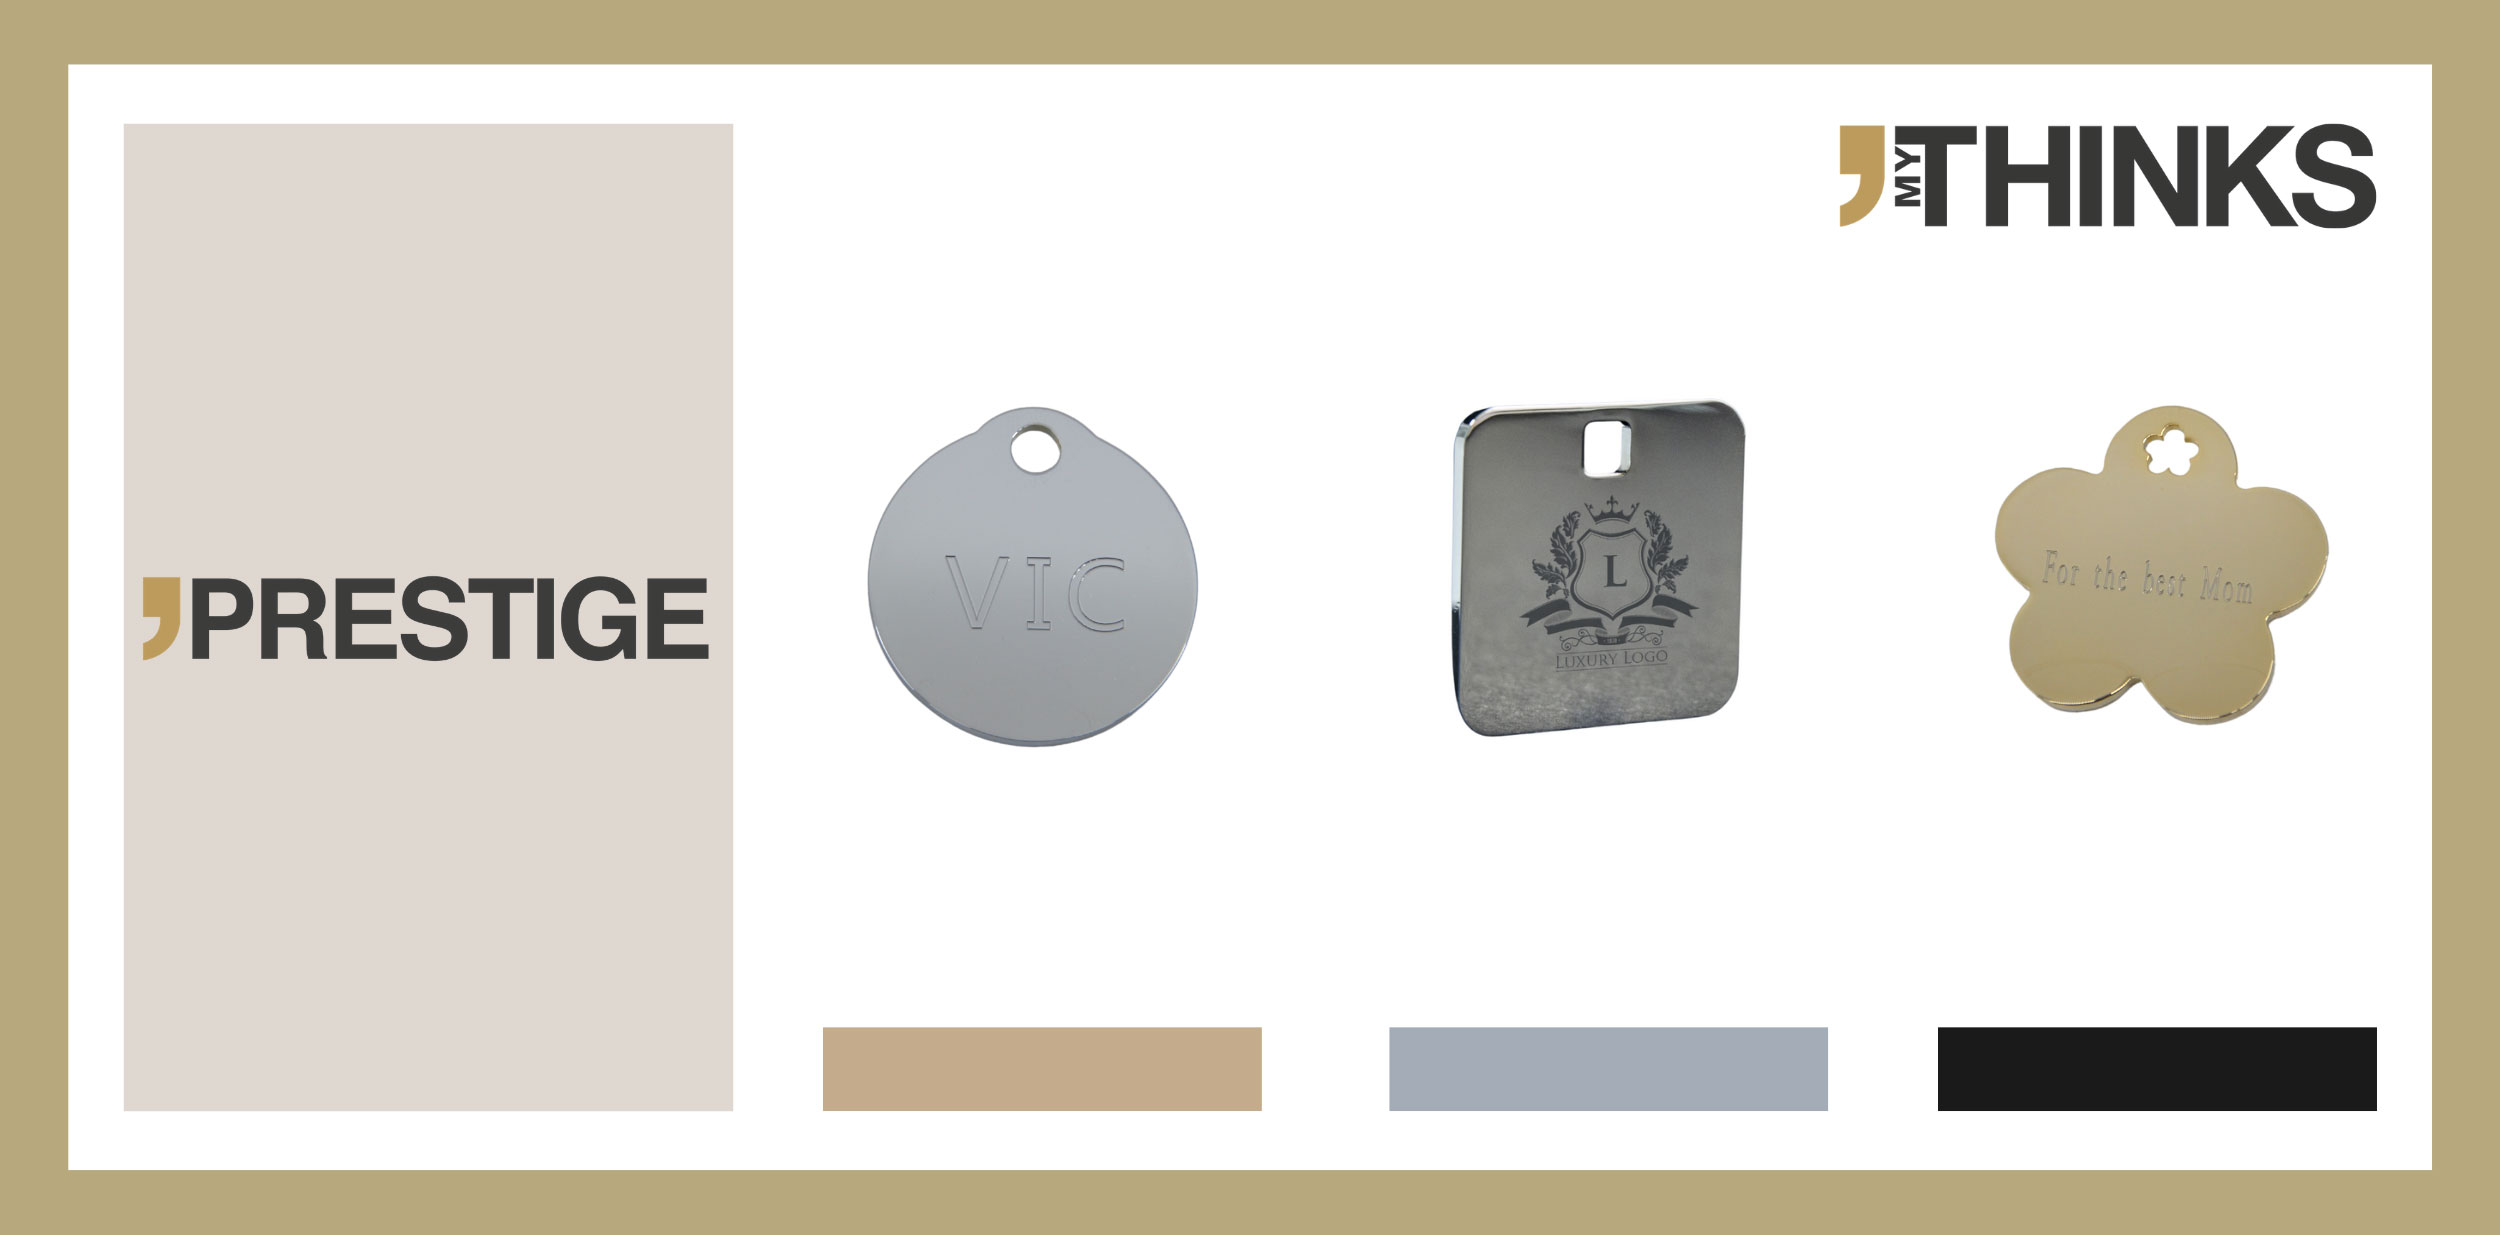 3 personalized gifts in coated brass from Prestige collection : round chrome with Monogram engraved medal, square chromed with logo engraved wih laser tag, flower 24 CT golf with text message engraved charm